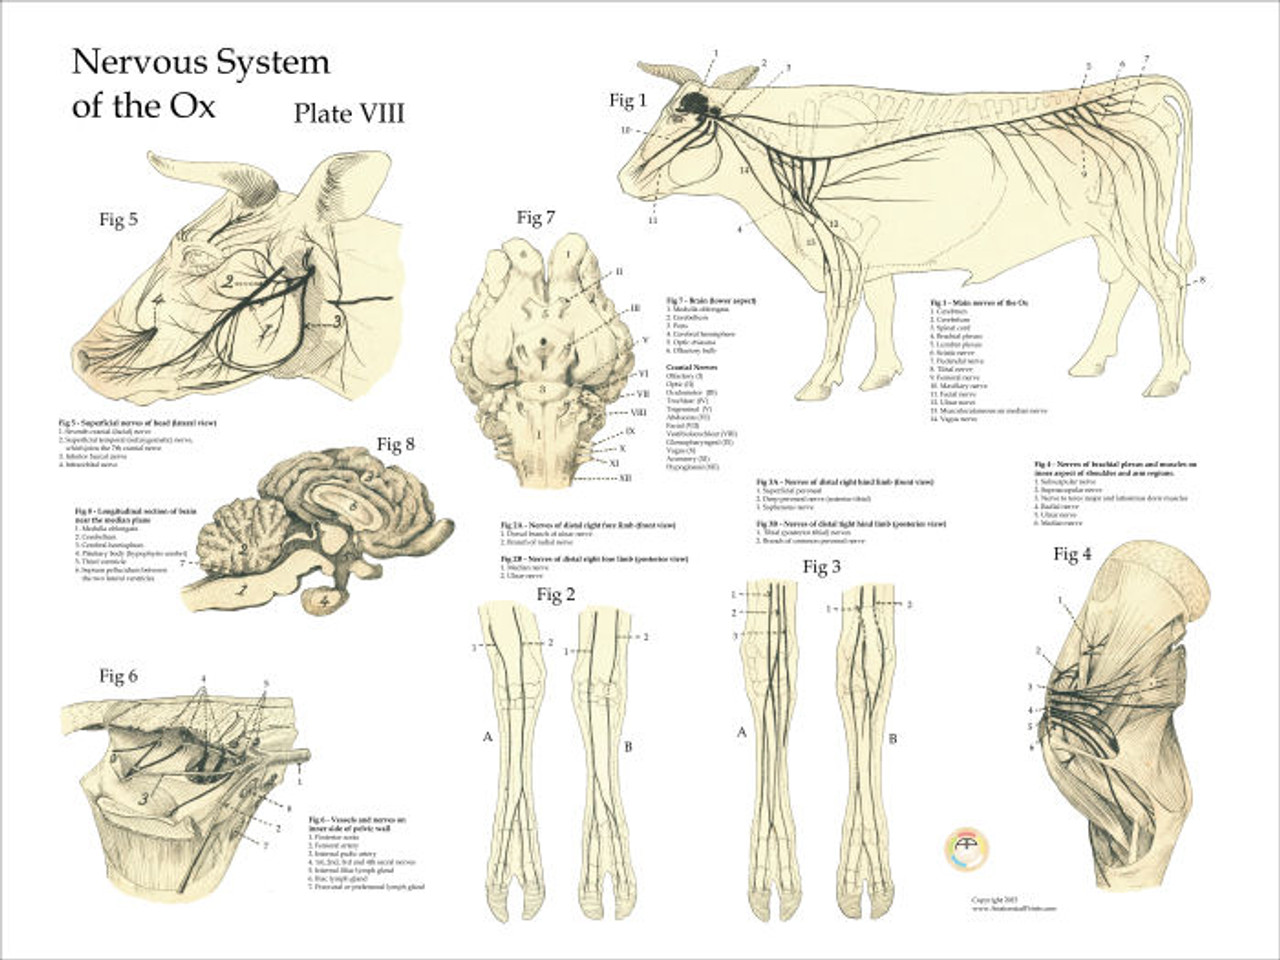 lung diagram cow cow nervous system poster clinical charts and supplies  cow nervous system poster clinical